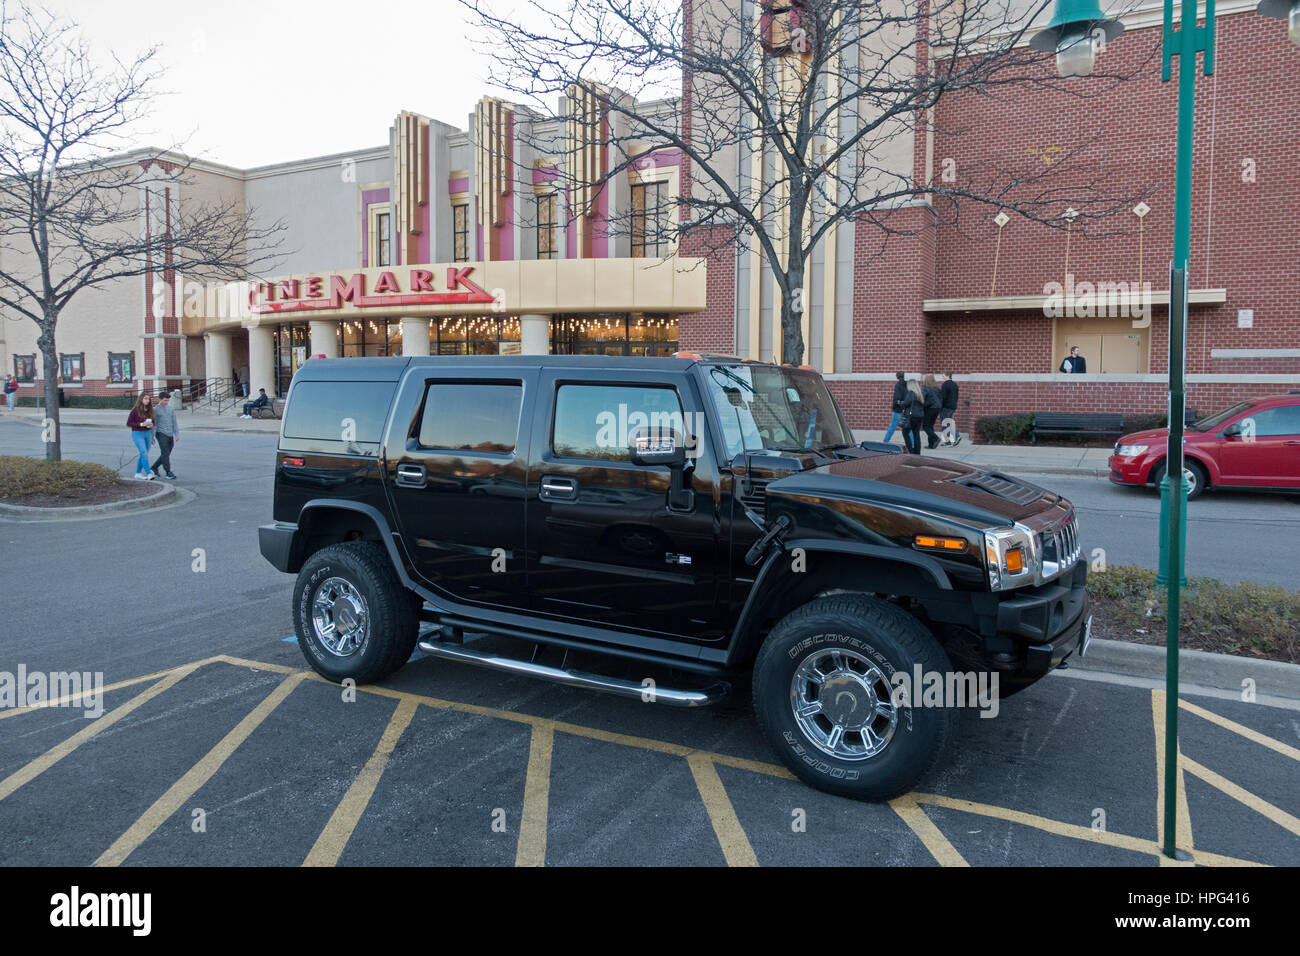 Black Hummer H2 SUV parked in the CineMark theater parking lot. Downers Grove Illinois IL USA - Stock Image